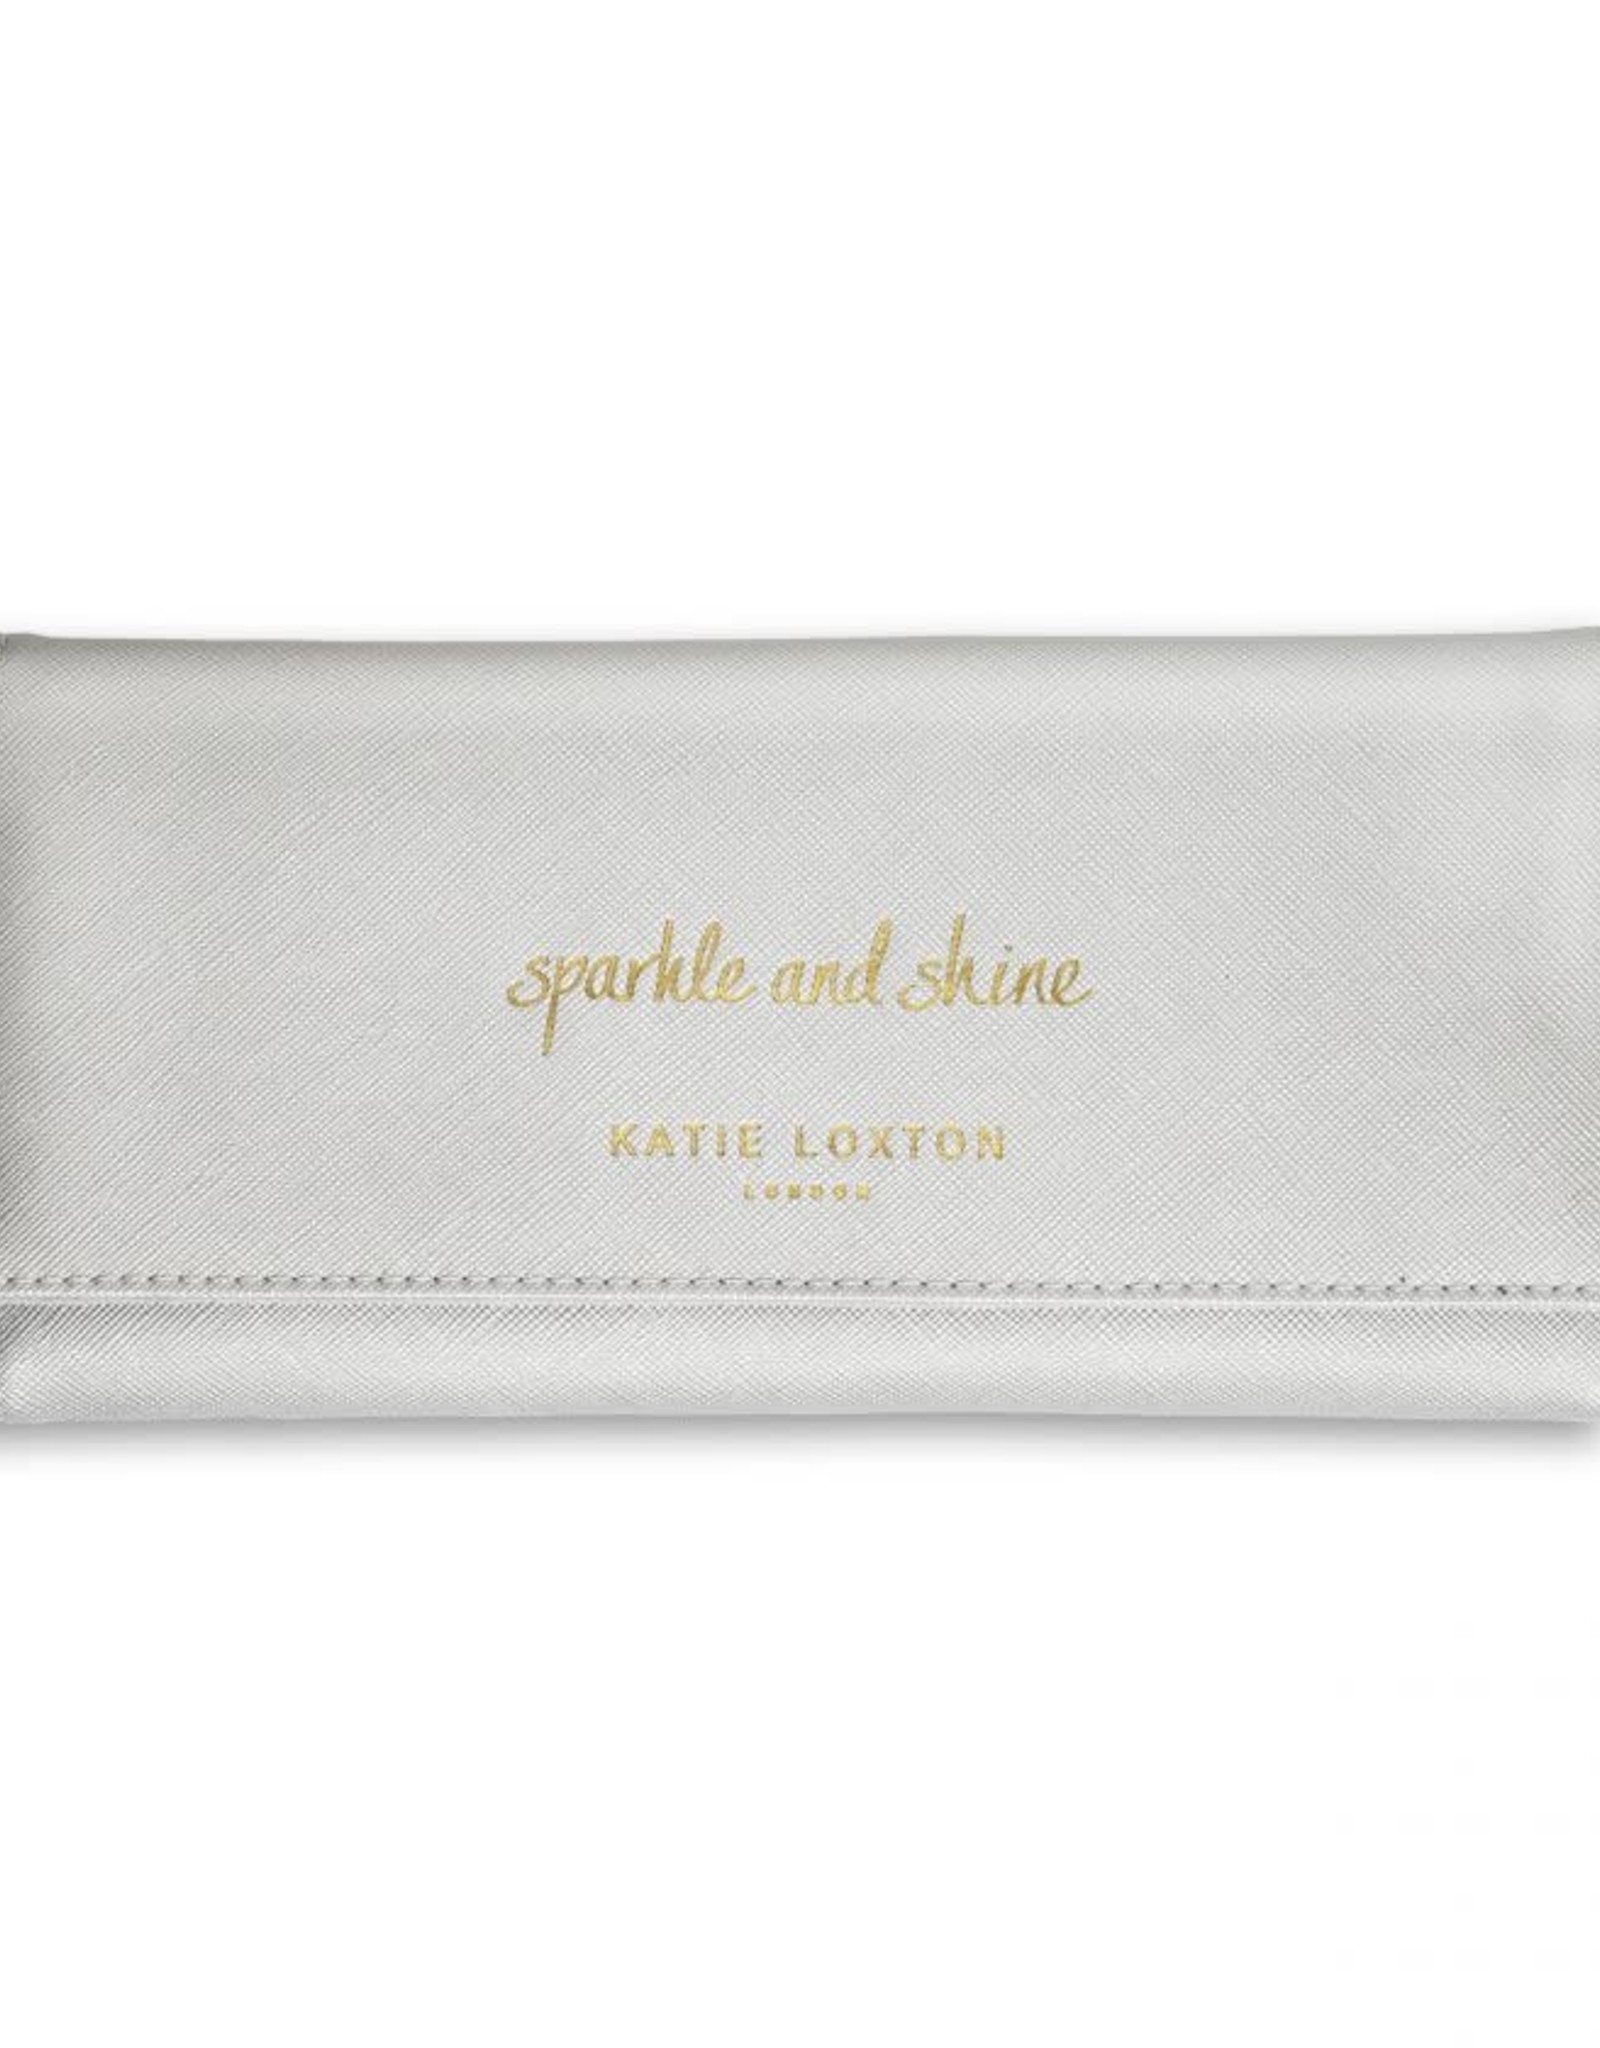 Katie Loxton Jewelry Roll-Sparkle and Shine Metallic Silver